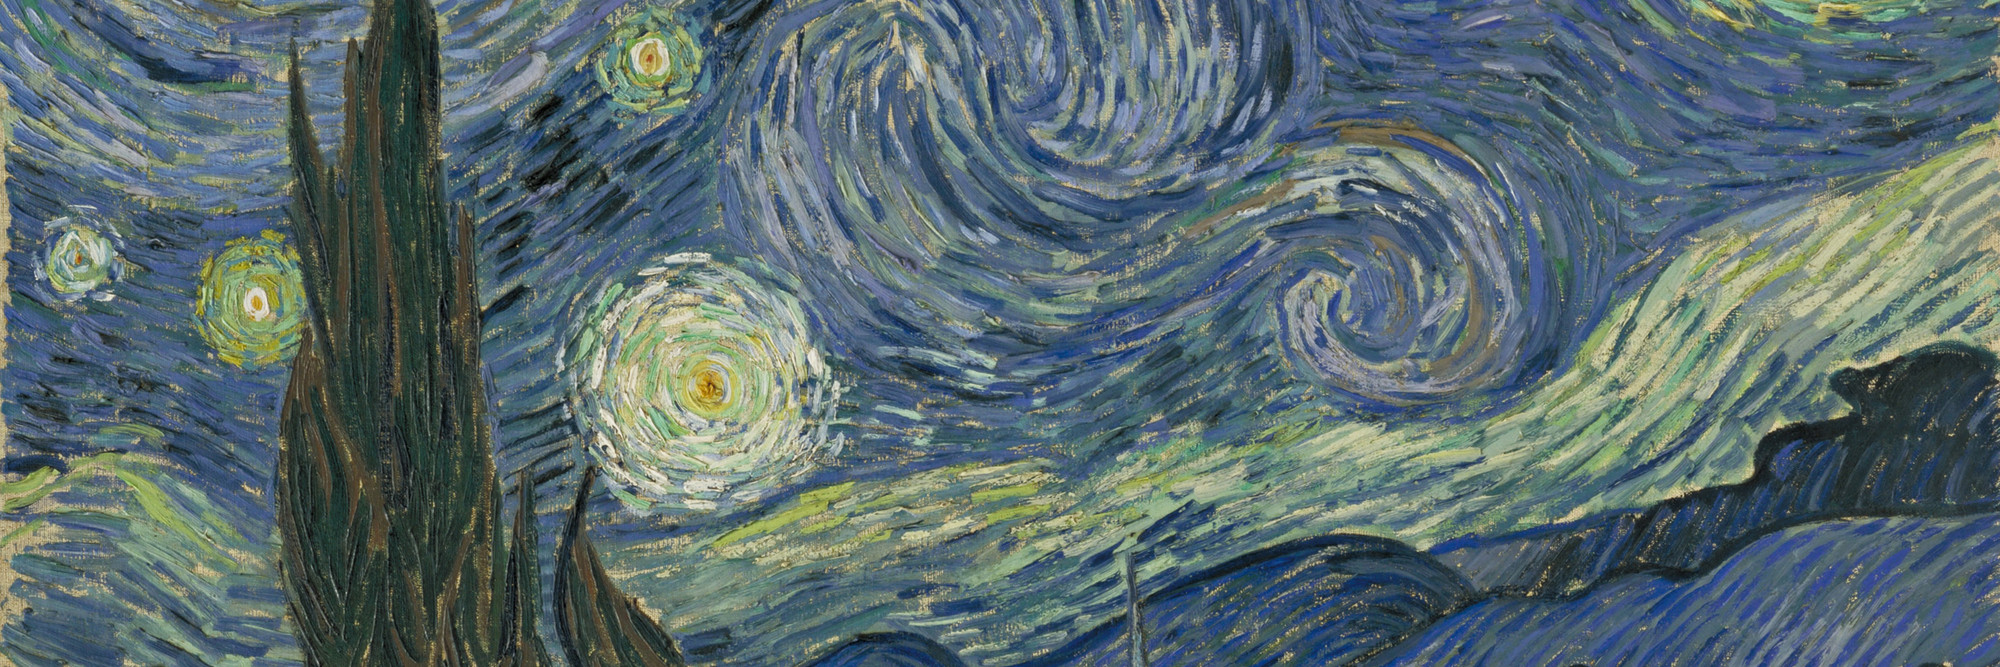 Vincent van Gogh. <em>The Starry Night.</em> Saint Rémy, June 1889. Oil on canvas, 29 × 36 1/4ʺ (73.7 × 92.1 cm). Acquired through the Lillie P. Bliss Bequest. Photo © 1999 The Museum of Modern Art, N.Y.